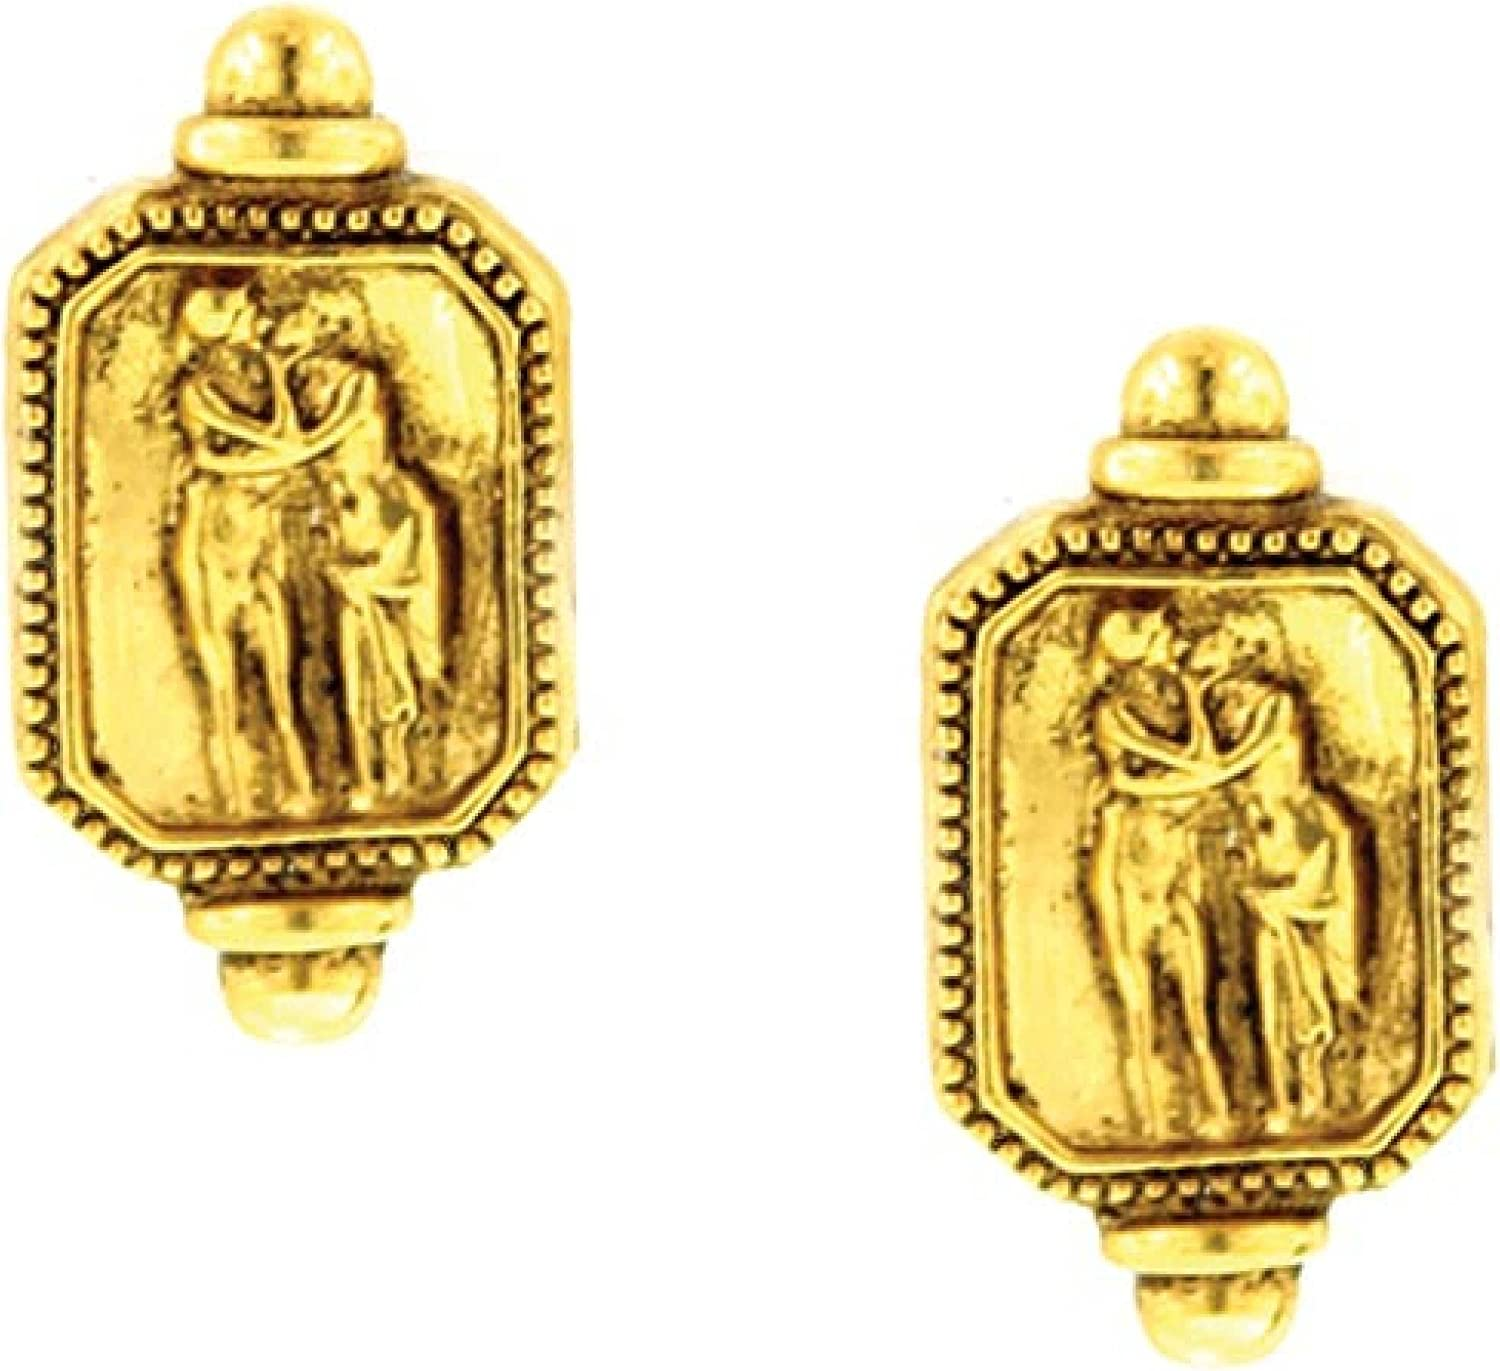 Antiquities Couture Gold Tone Adoration Clip On Earrings